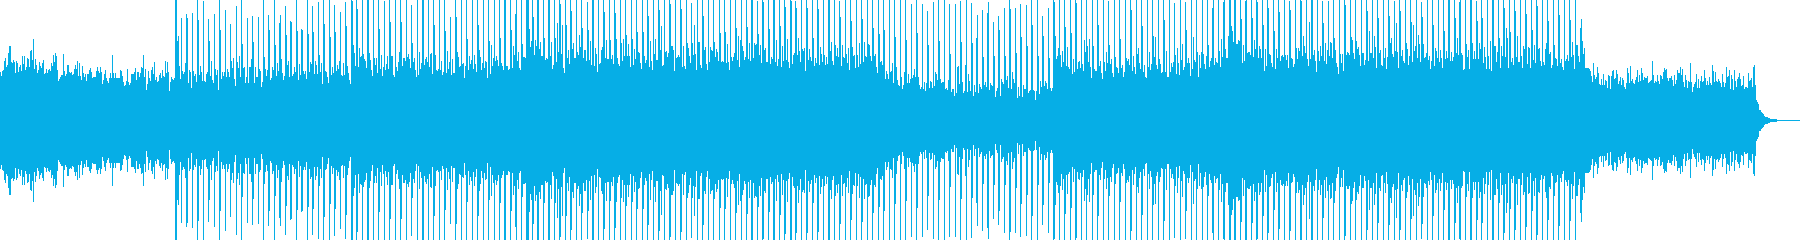 EDM club dance music-24's reproduced waveform